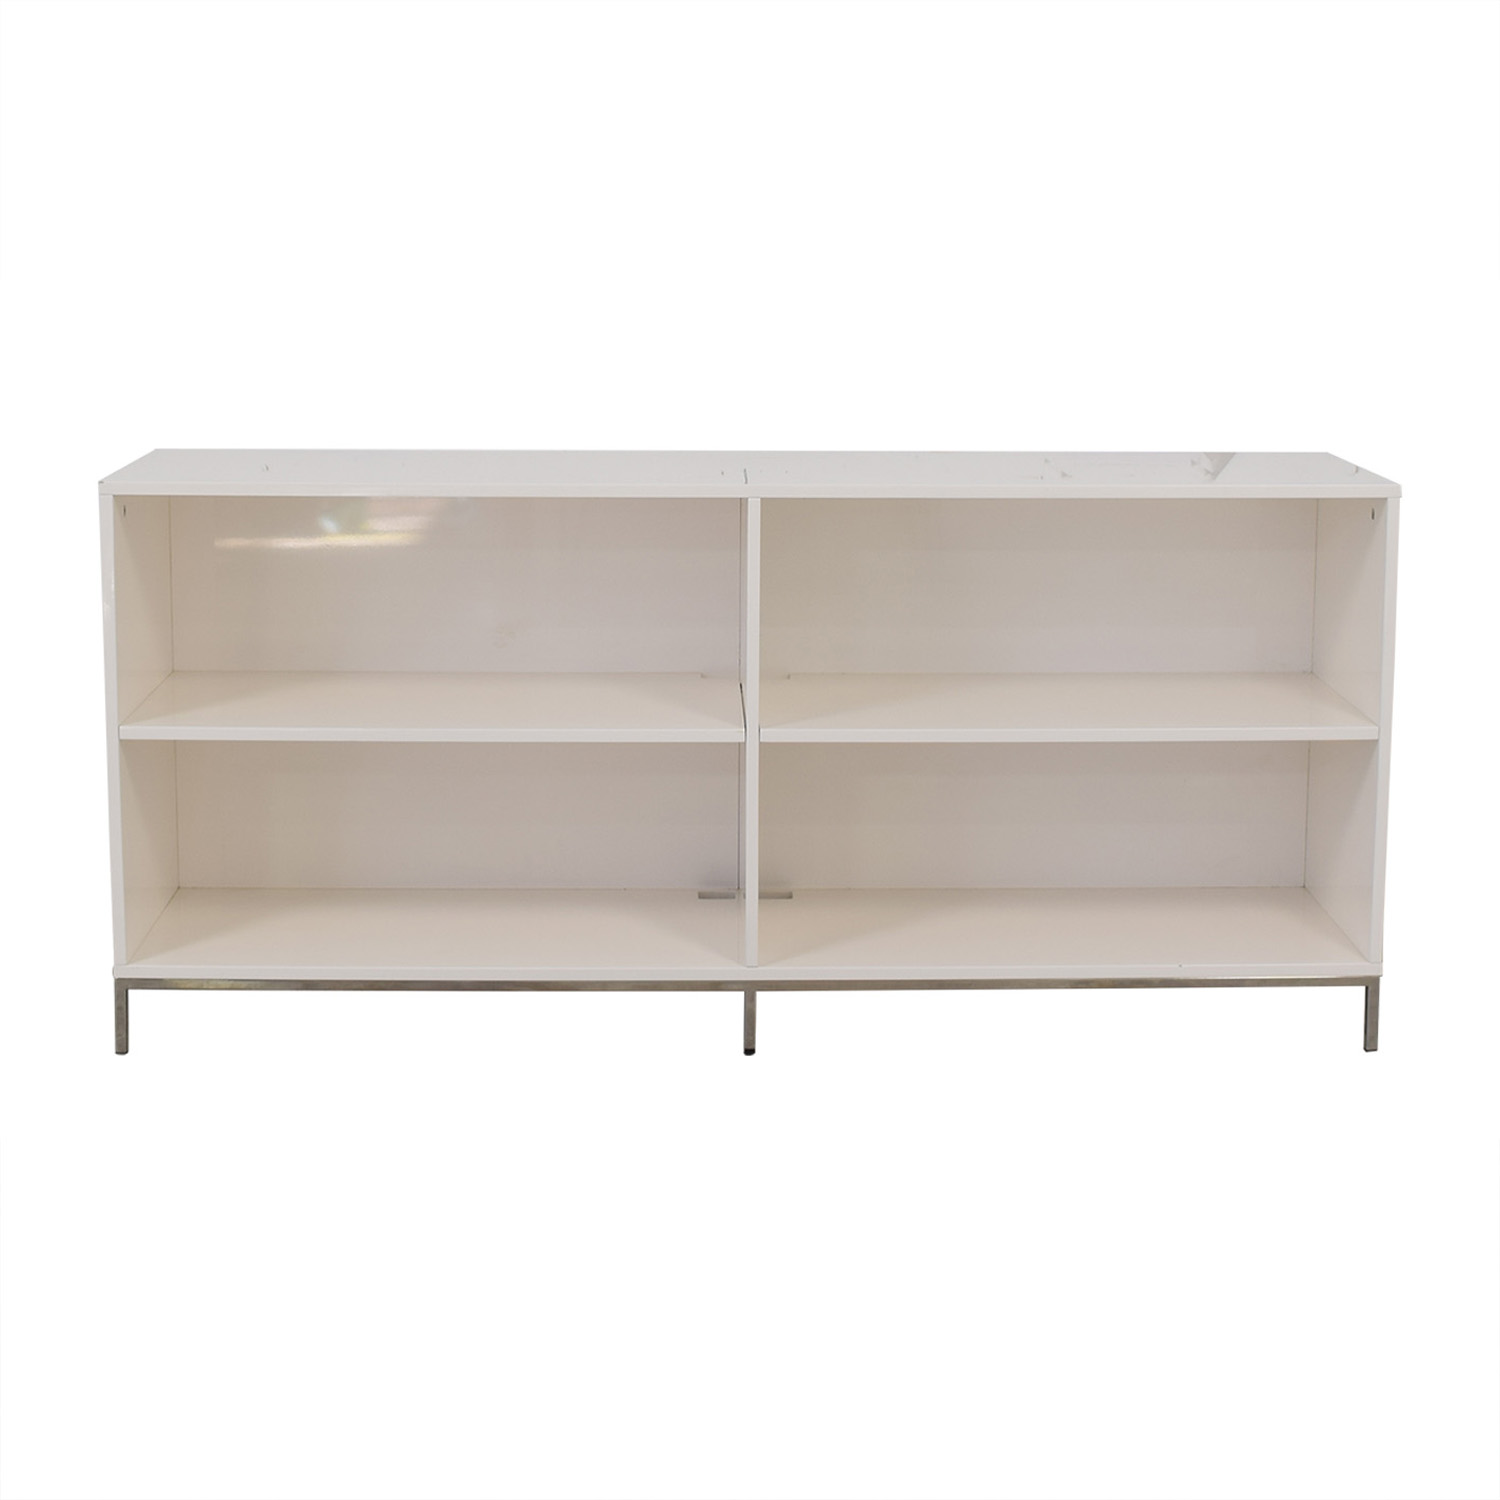 West Elm West Elm White Lacquer Storage Bookcase for sale